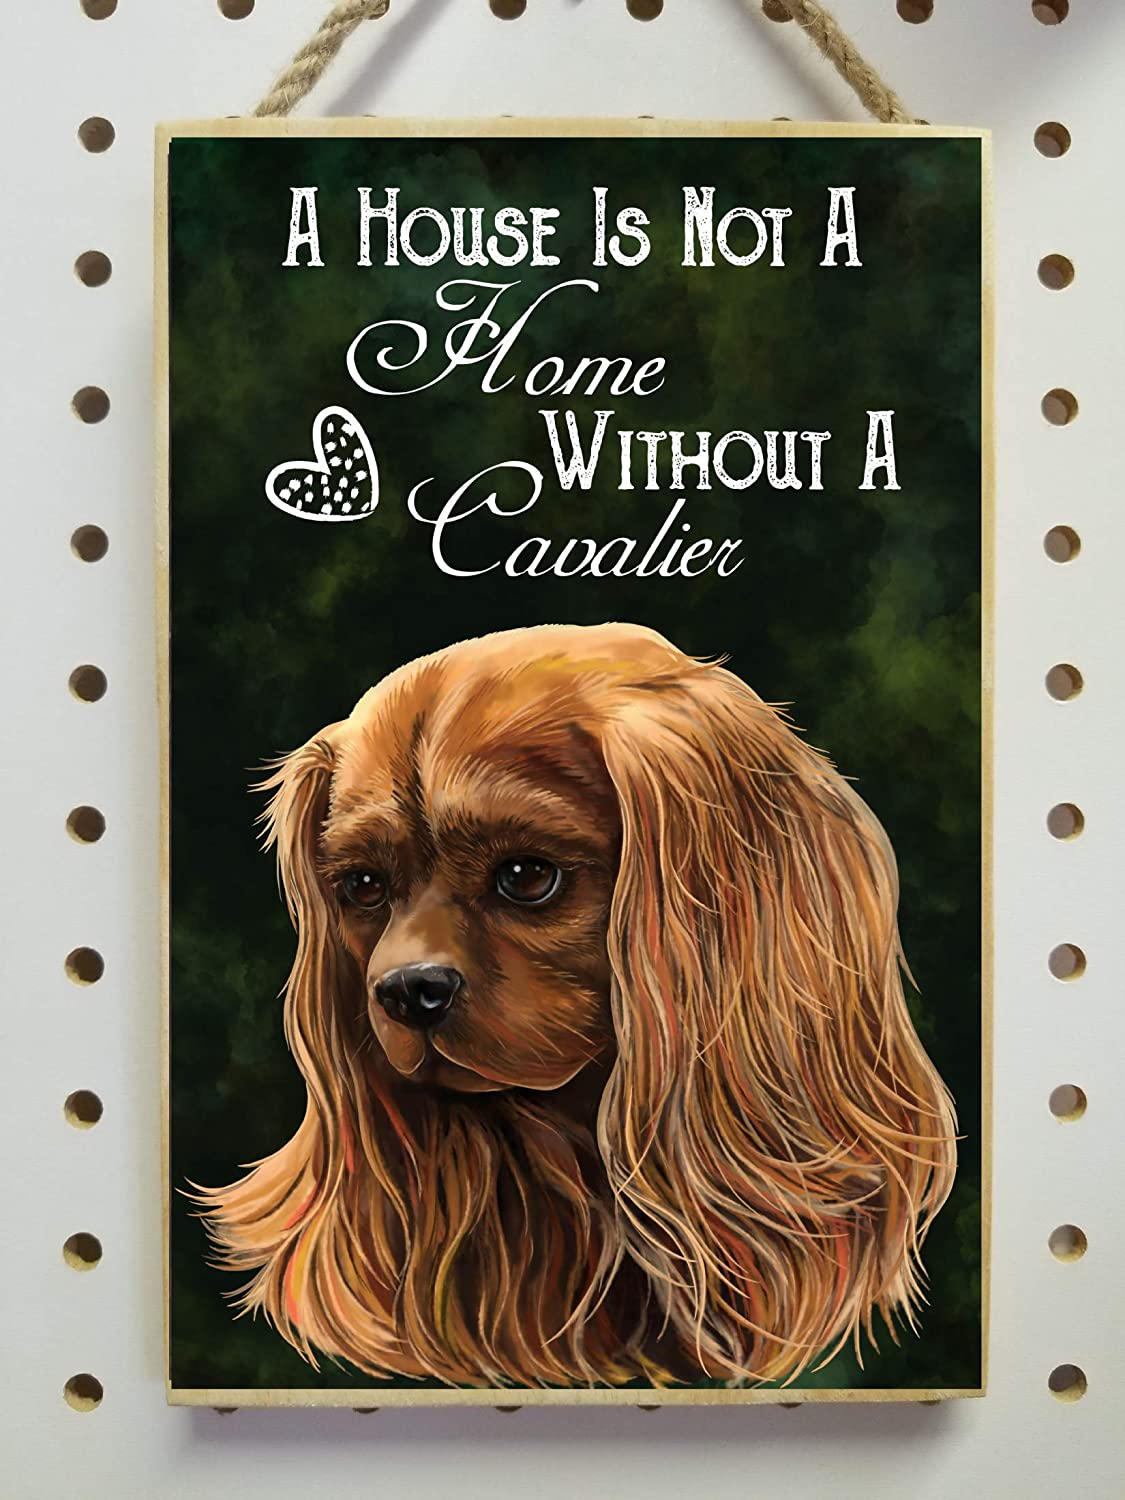 Amazon.com: Cavalier King Charles Spaniel gifts, Ruby Red Cavalier, Wooden Plaque, Sign - A House Is Not A Home Without A Cavalier: Handmade